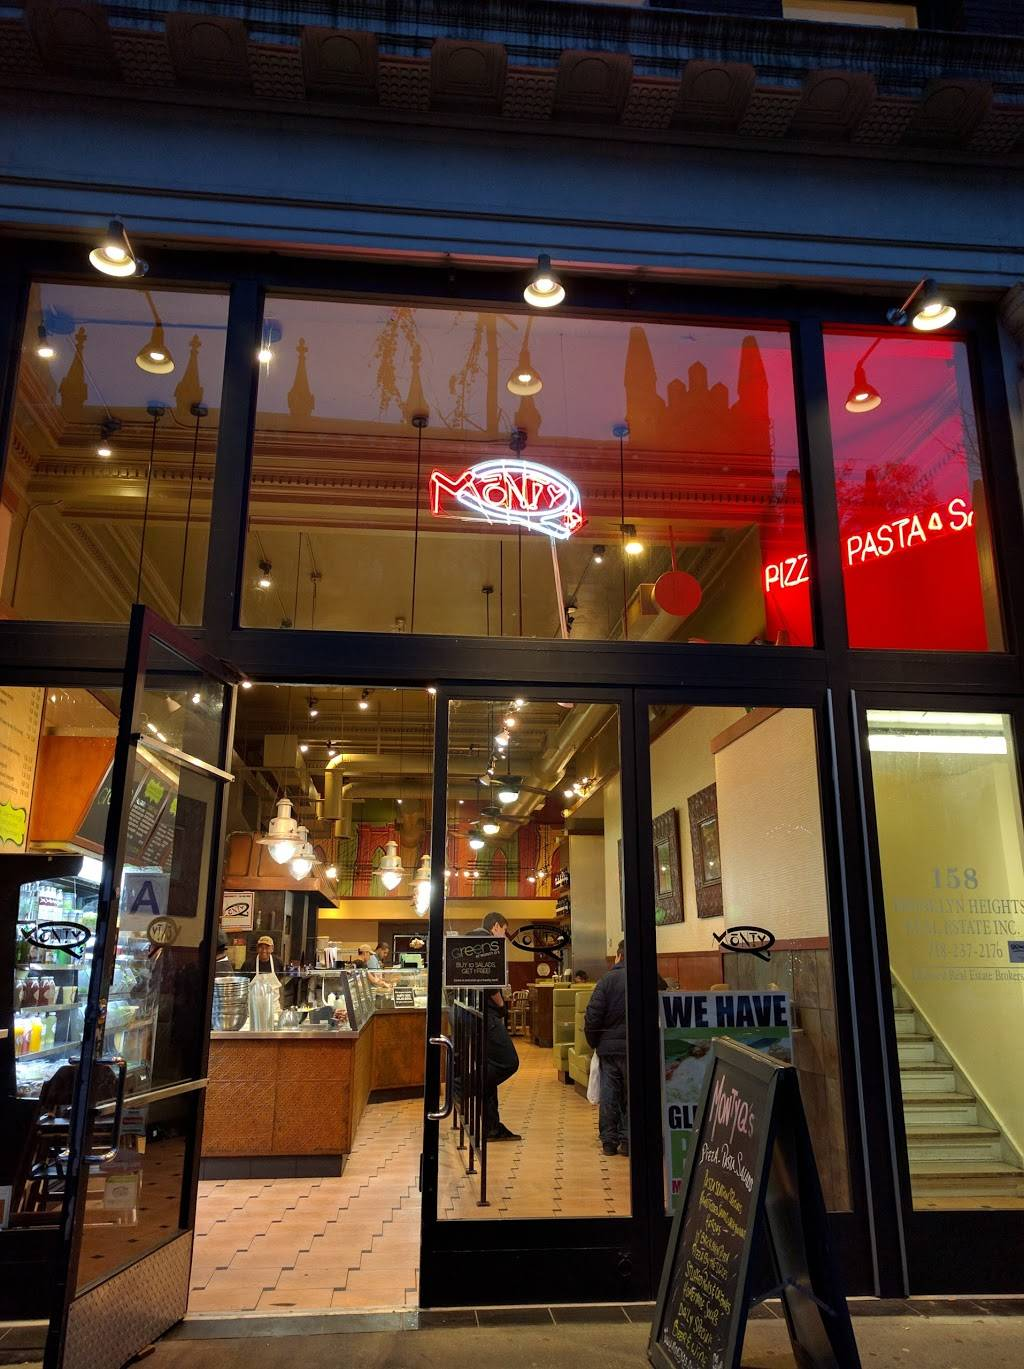 Monty Qs | meal takeaway | 158 Montague St, Brooklyn, NY 11201, USA | 7182462000 OR +1 718-246-2000